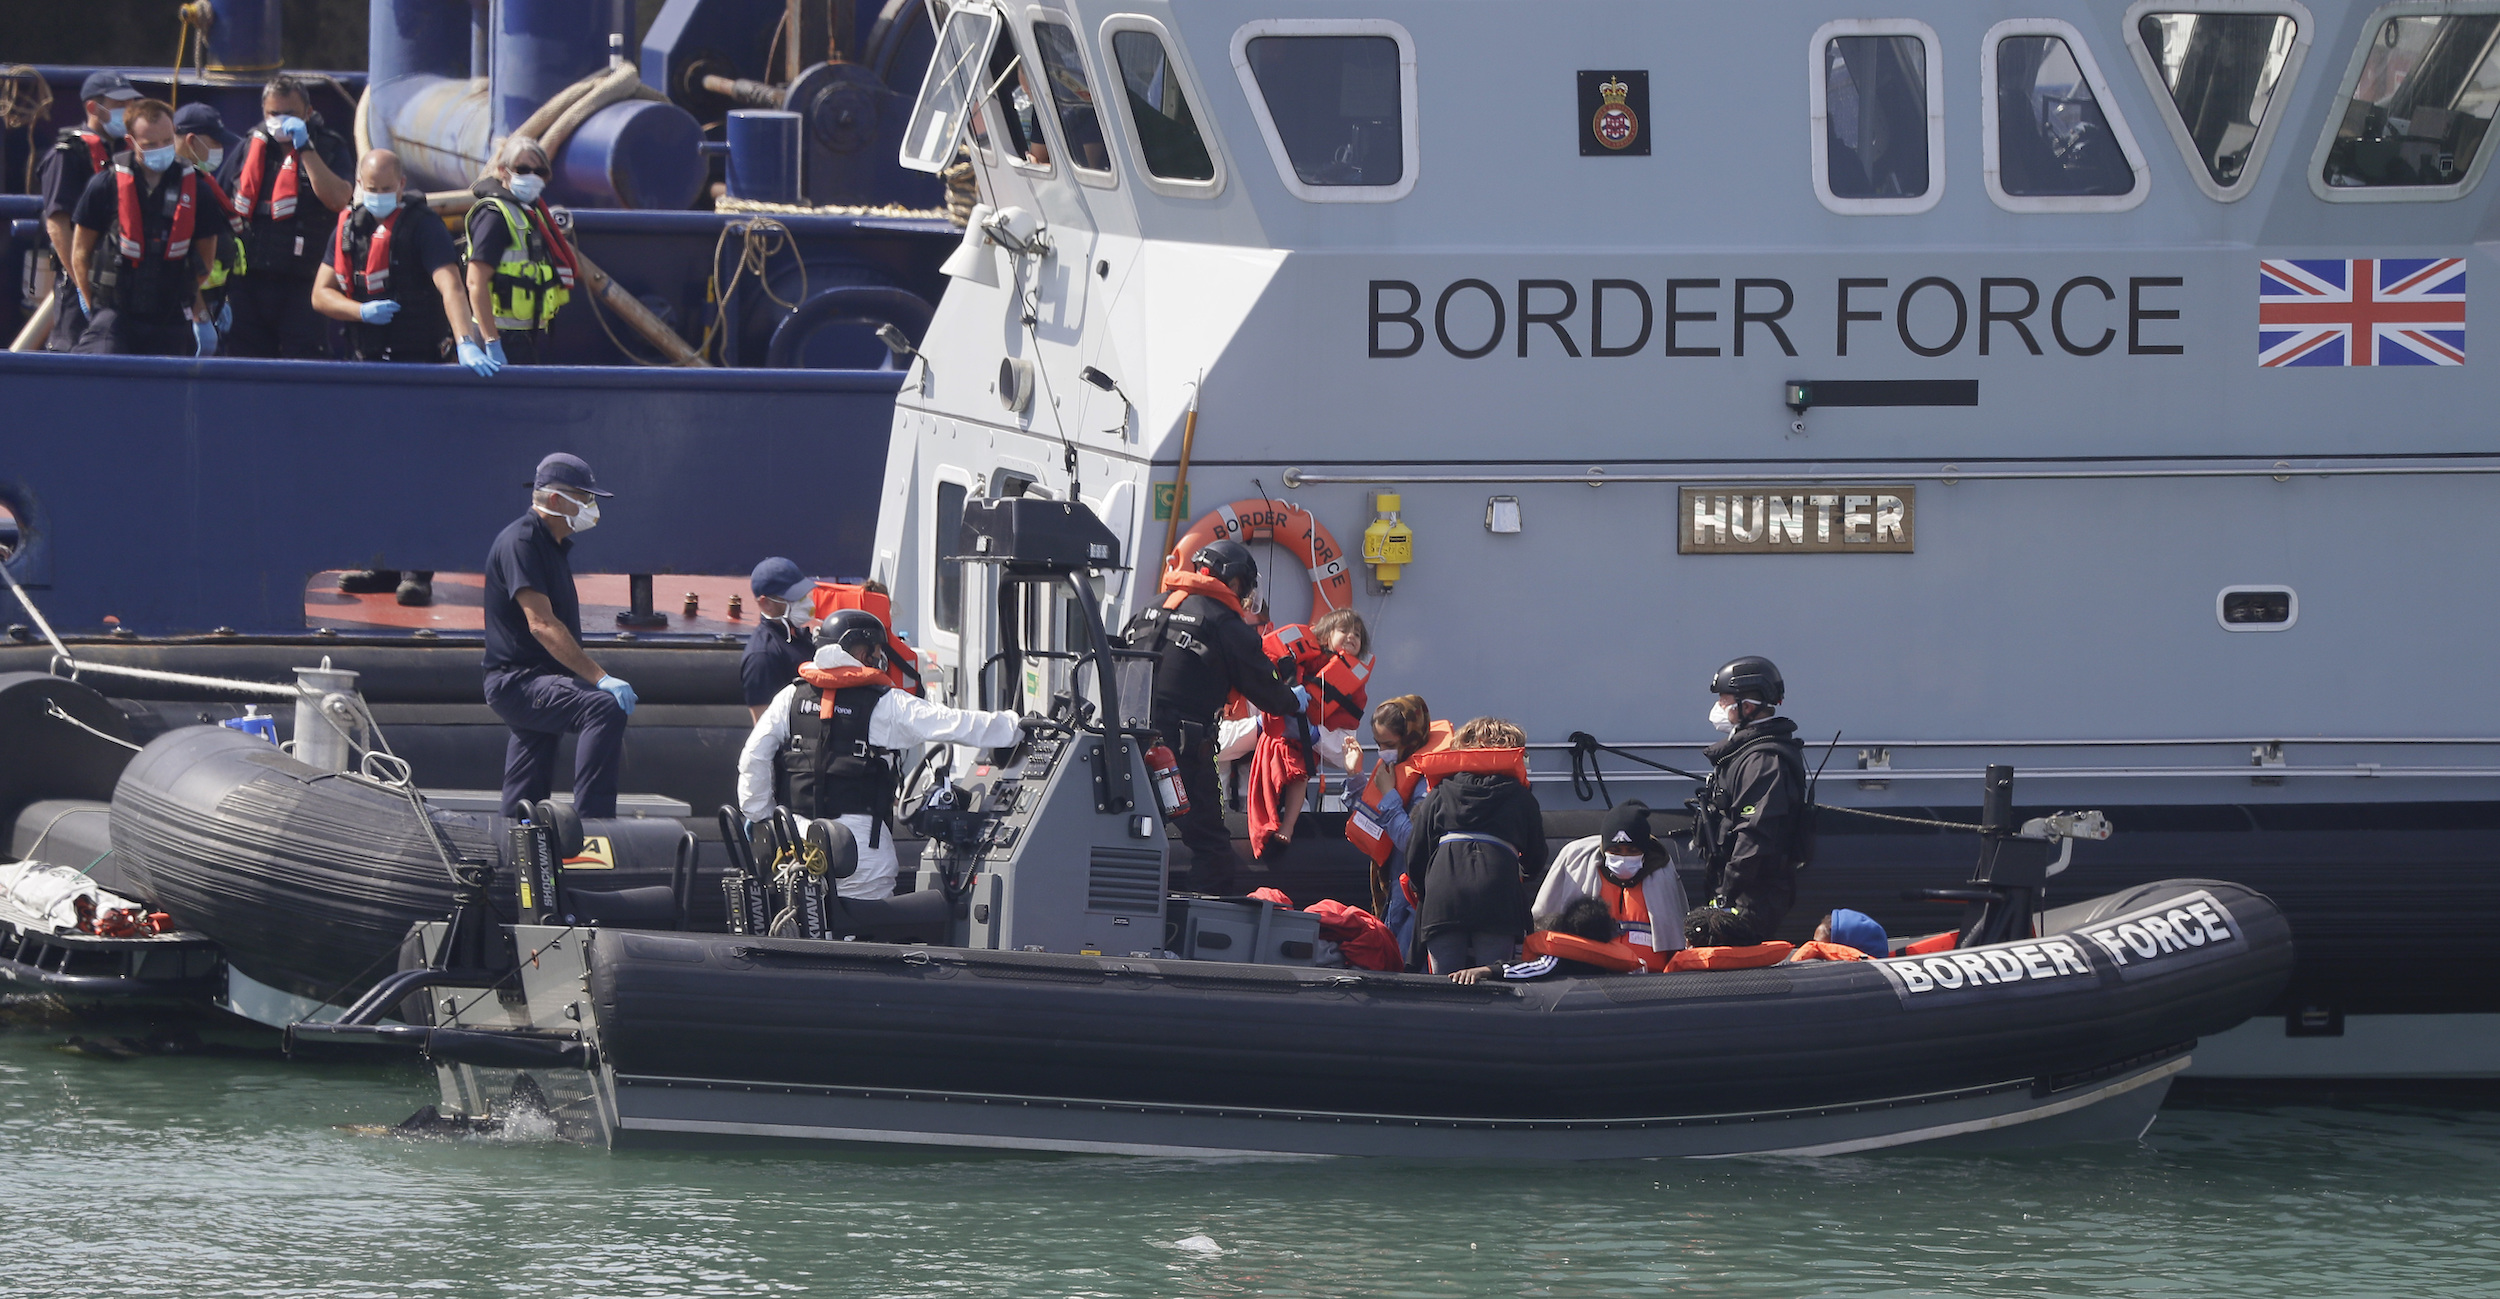 UK Should Immediately Halt All Plans to Militarize the English Channel to Stop Migrant Crossings